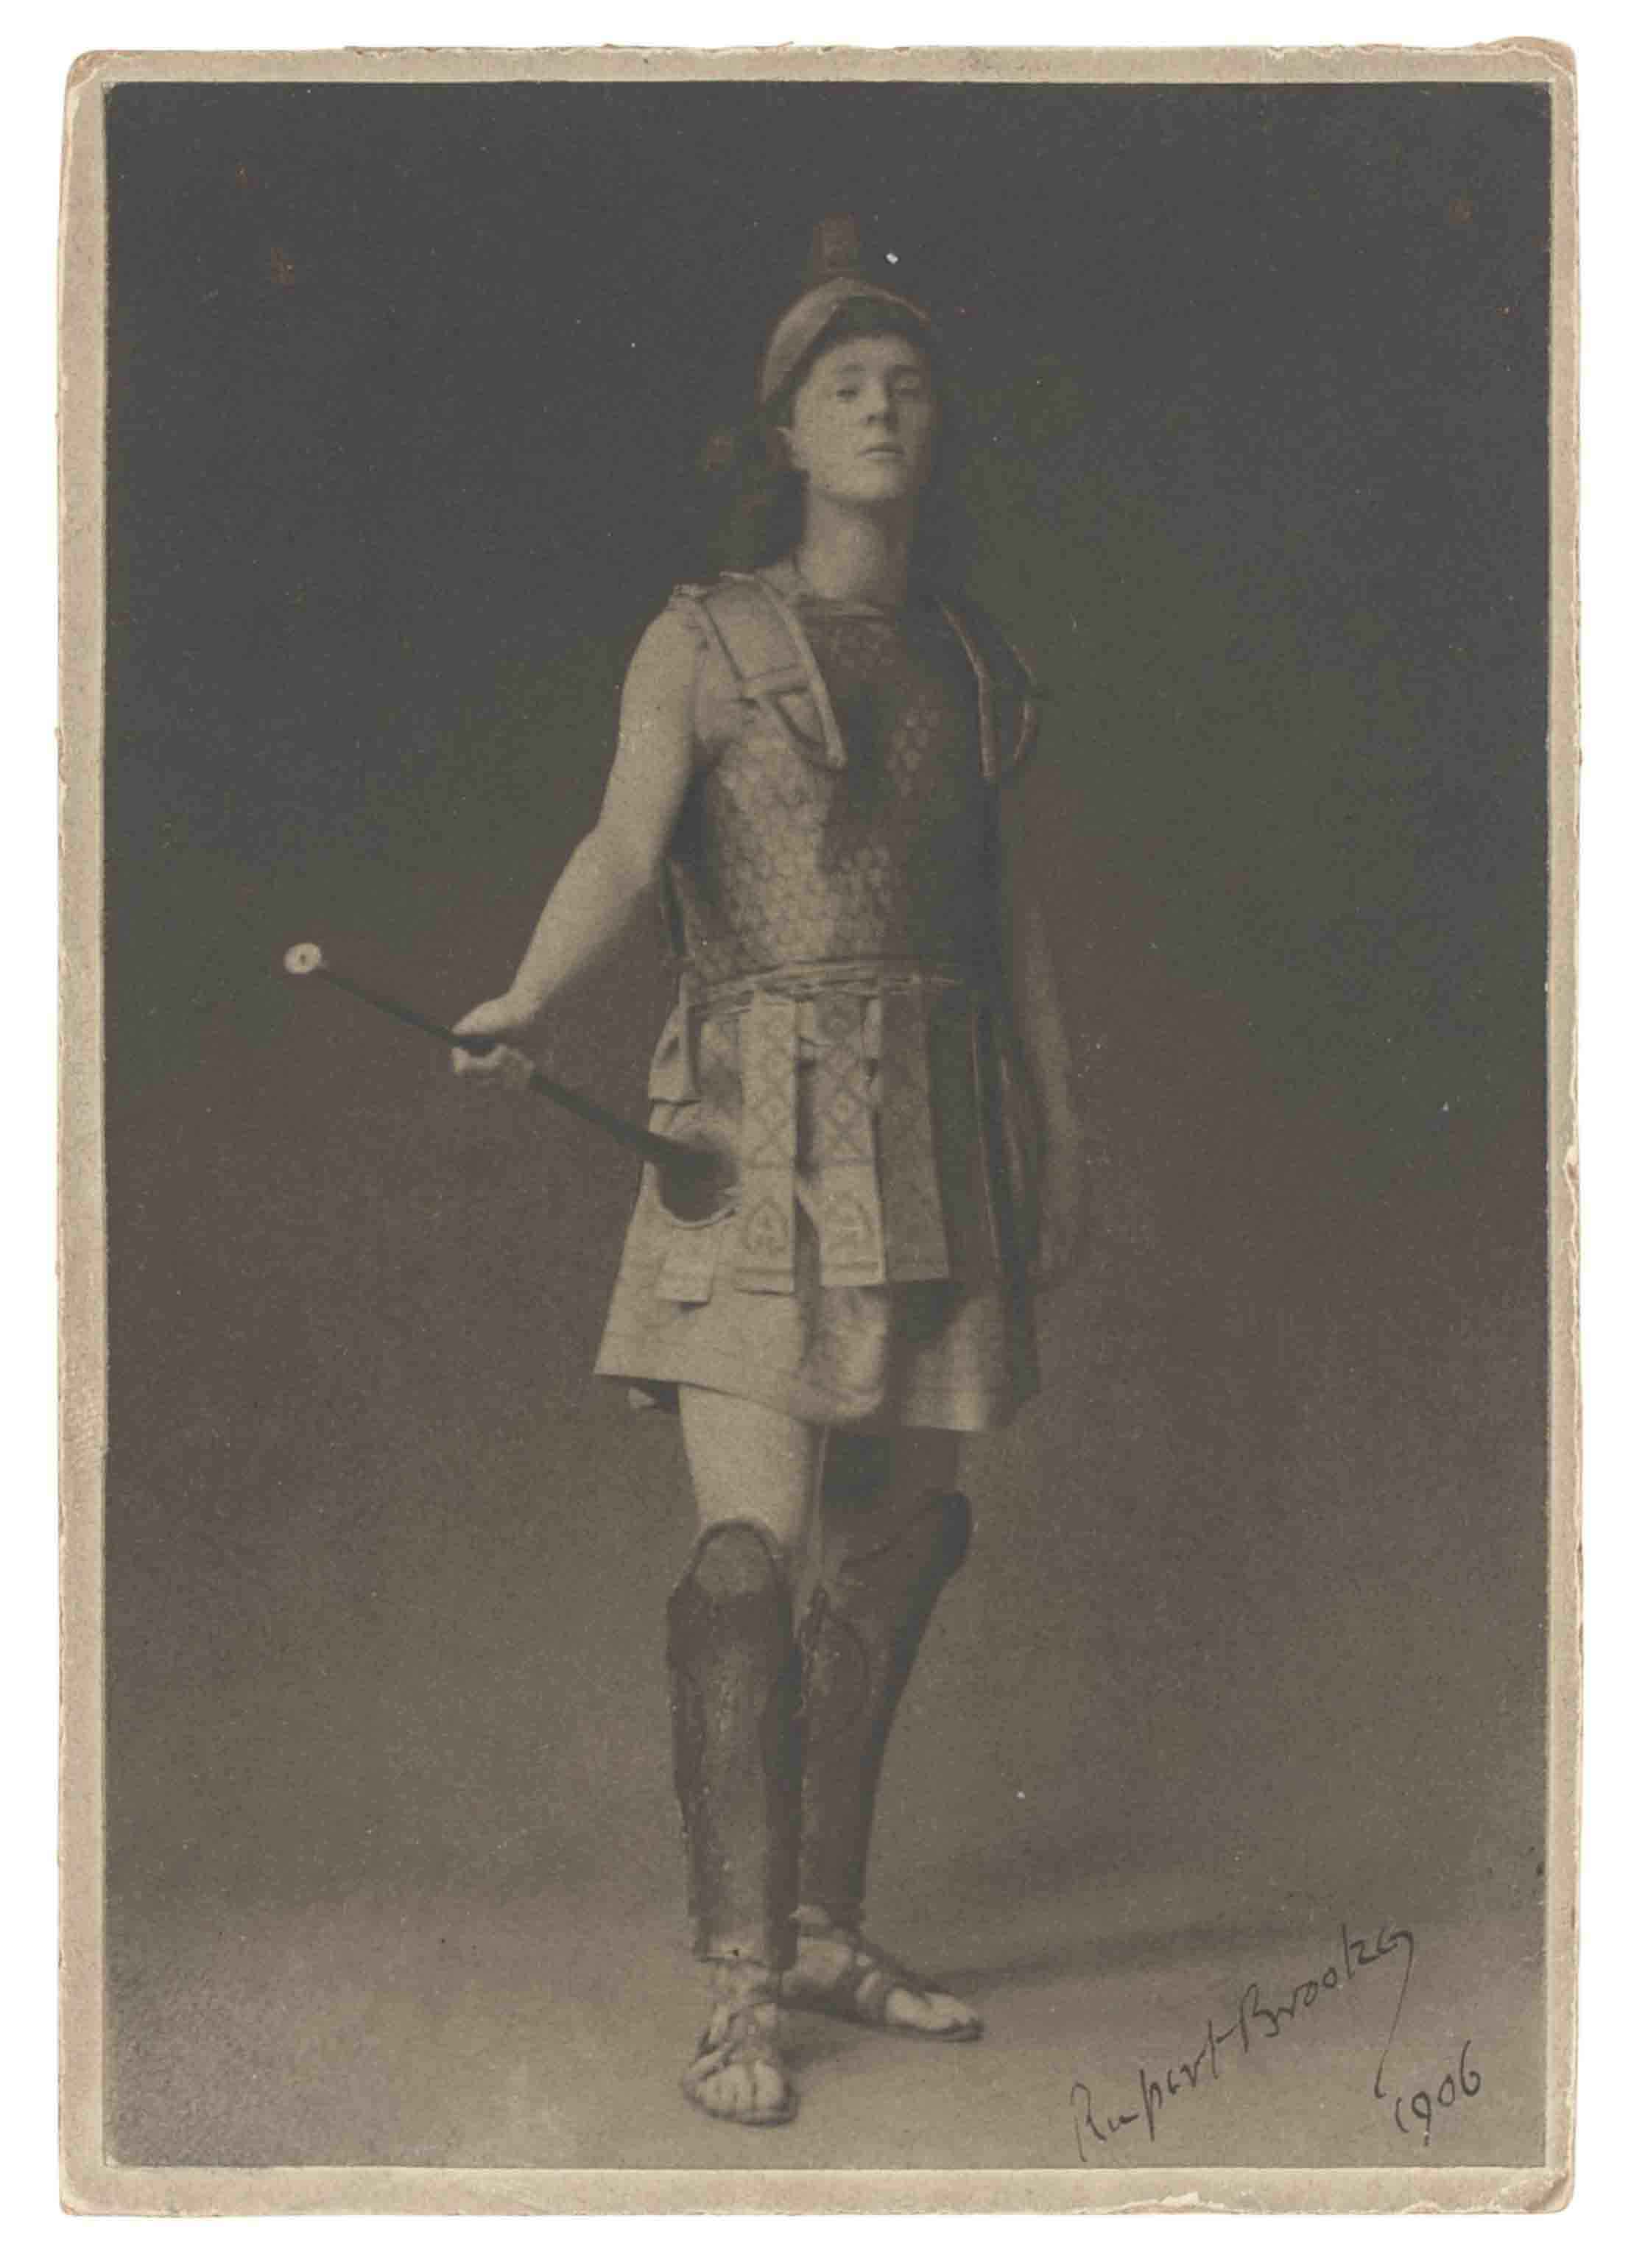 BROOKE, Rupert (1887-1915). Portrait photograph signed ('Rupert Brooke  1906') showing Brooke in costume as the herald in Aeschylus's Eumenides, image 144 x 99mm, mount 150 x 105mm, envelope. Provenance: Roger Senhouse collection (his notes to verso, identified in catalogue excerpt from an unidentified sale).